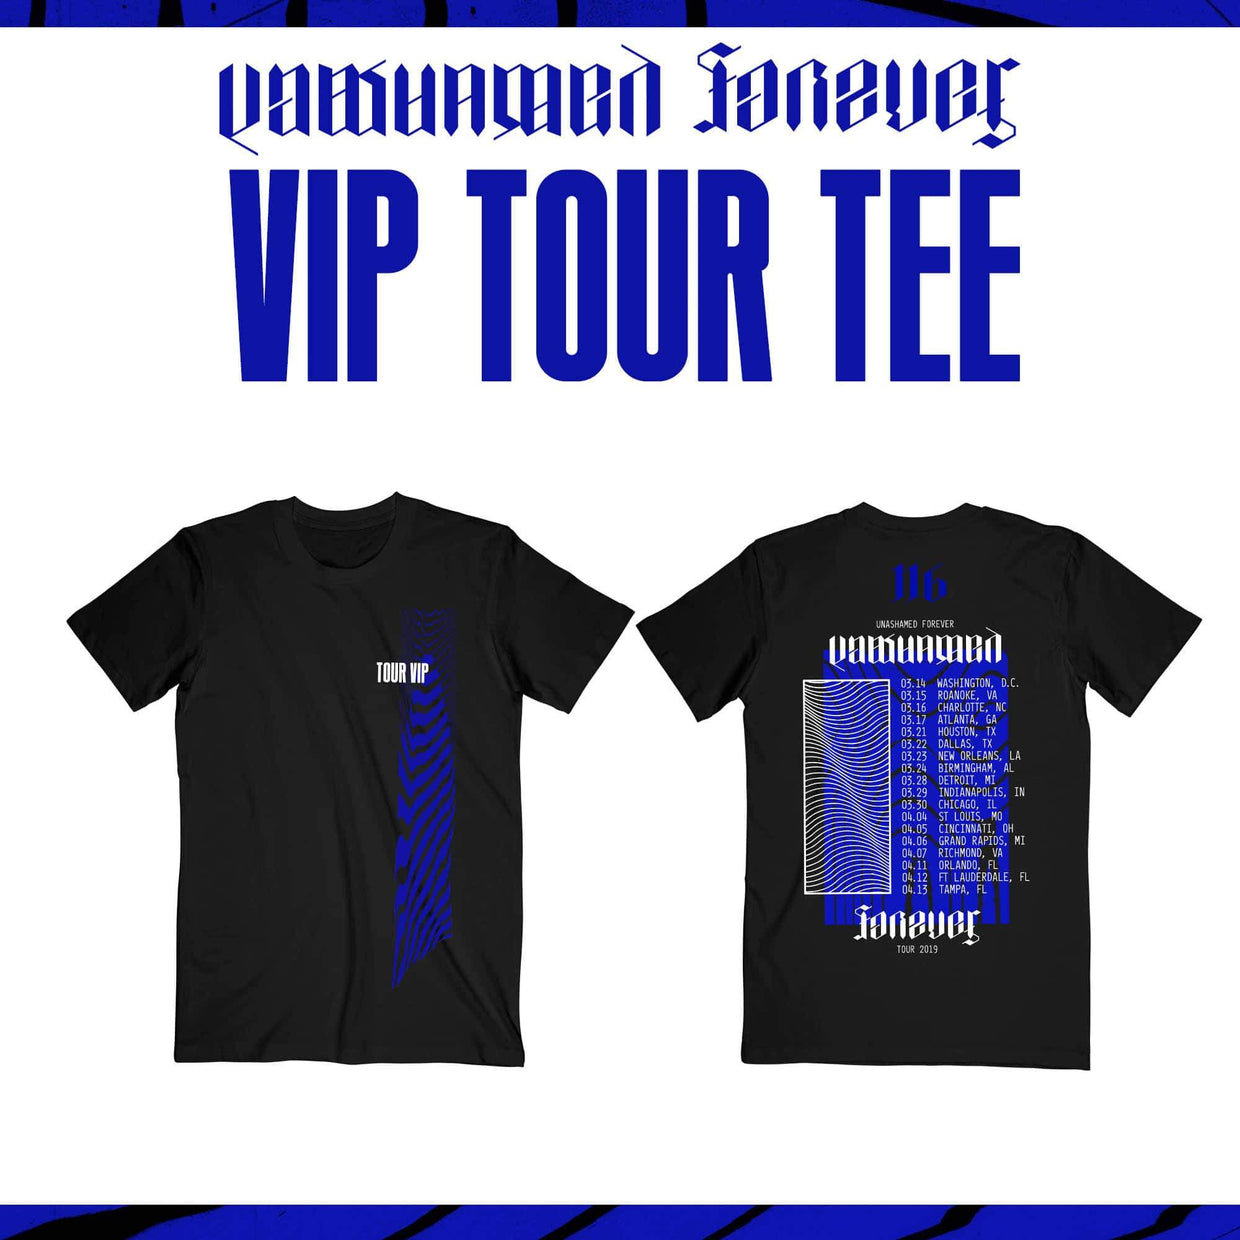 Unashamed Forever Tour - DIAMOND VIP - Roanoke, VA - 03/15